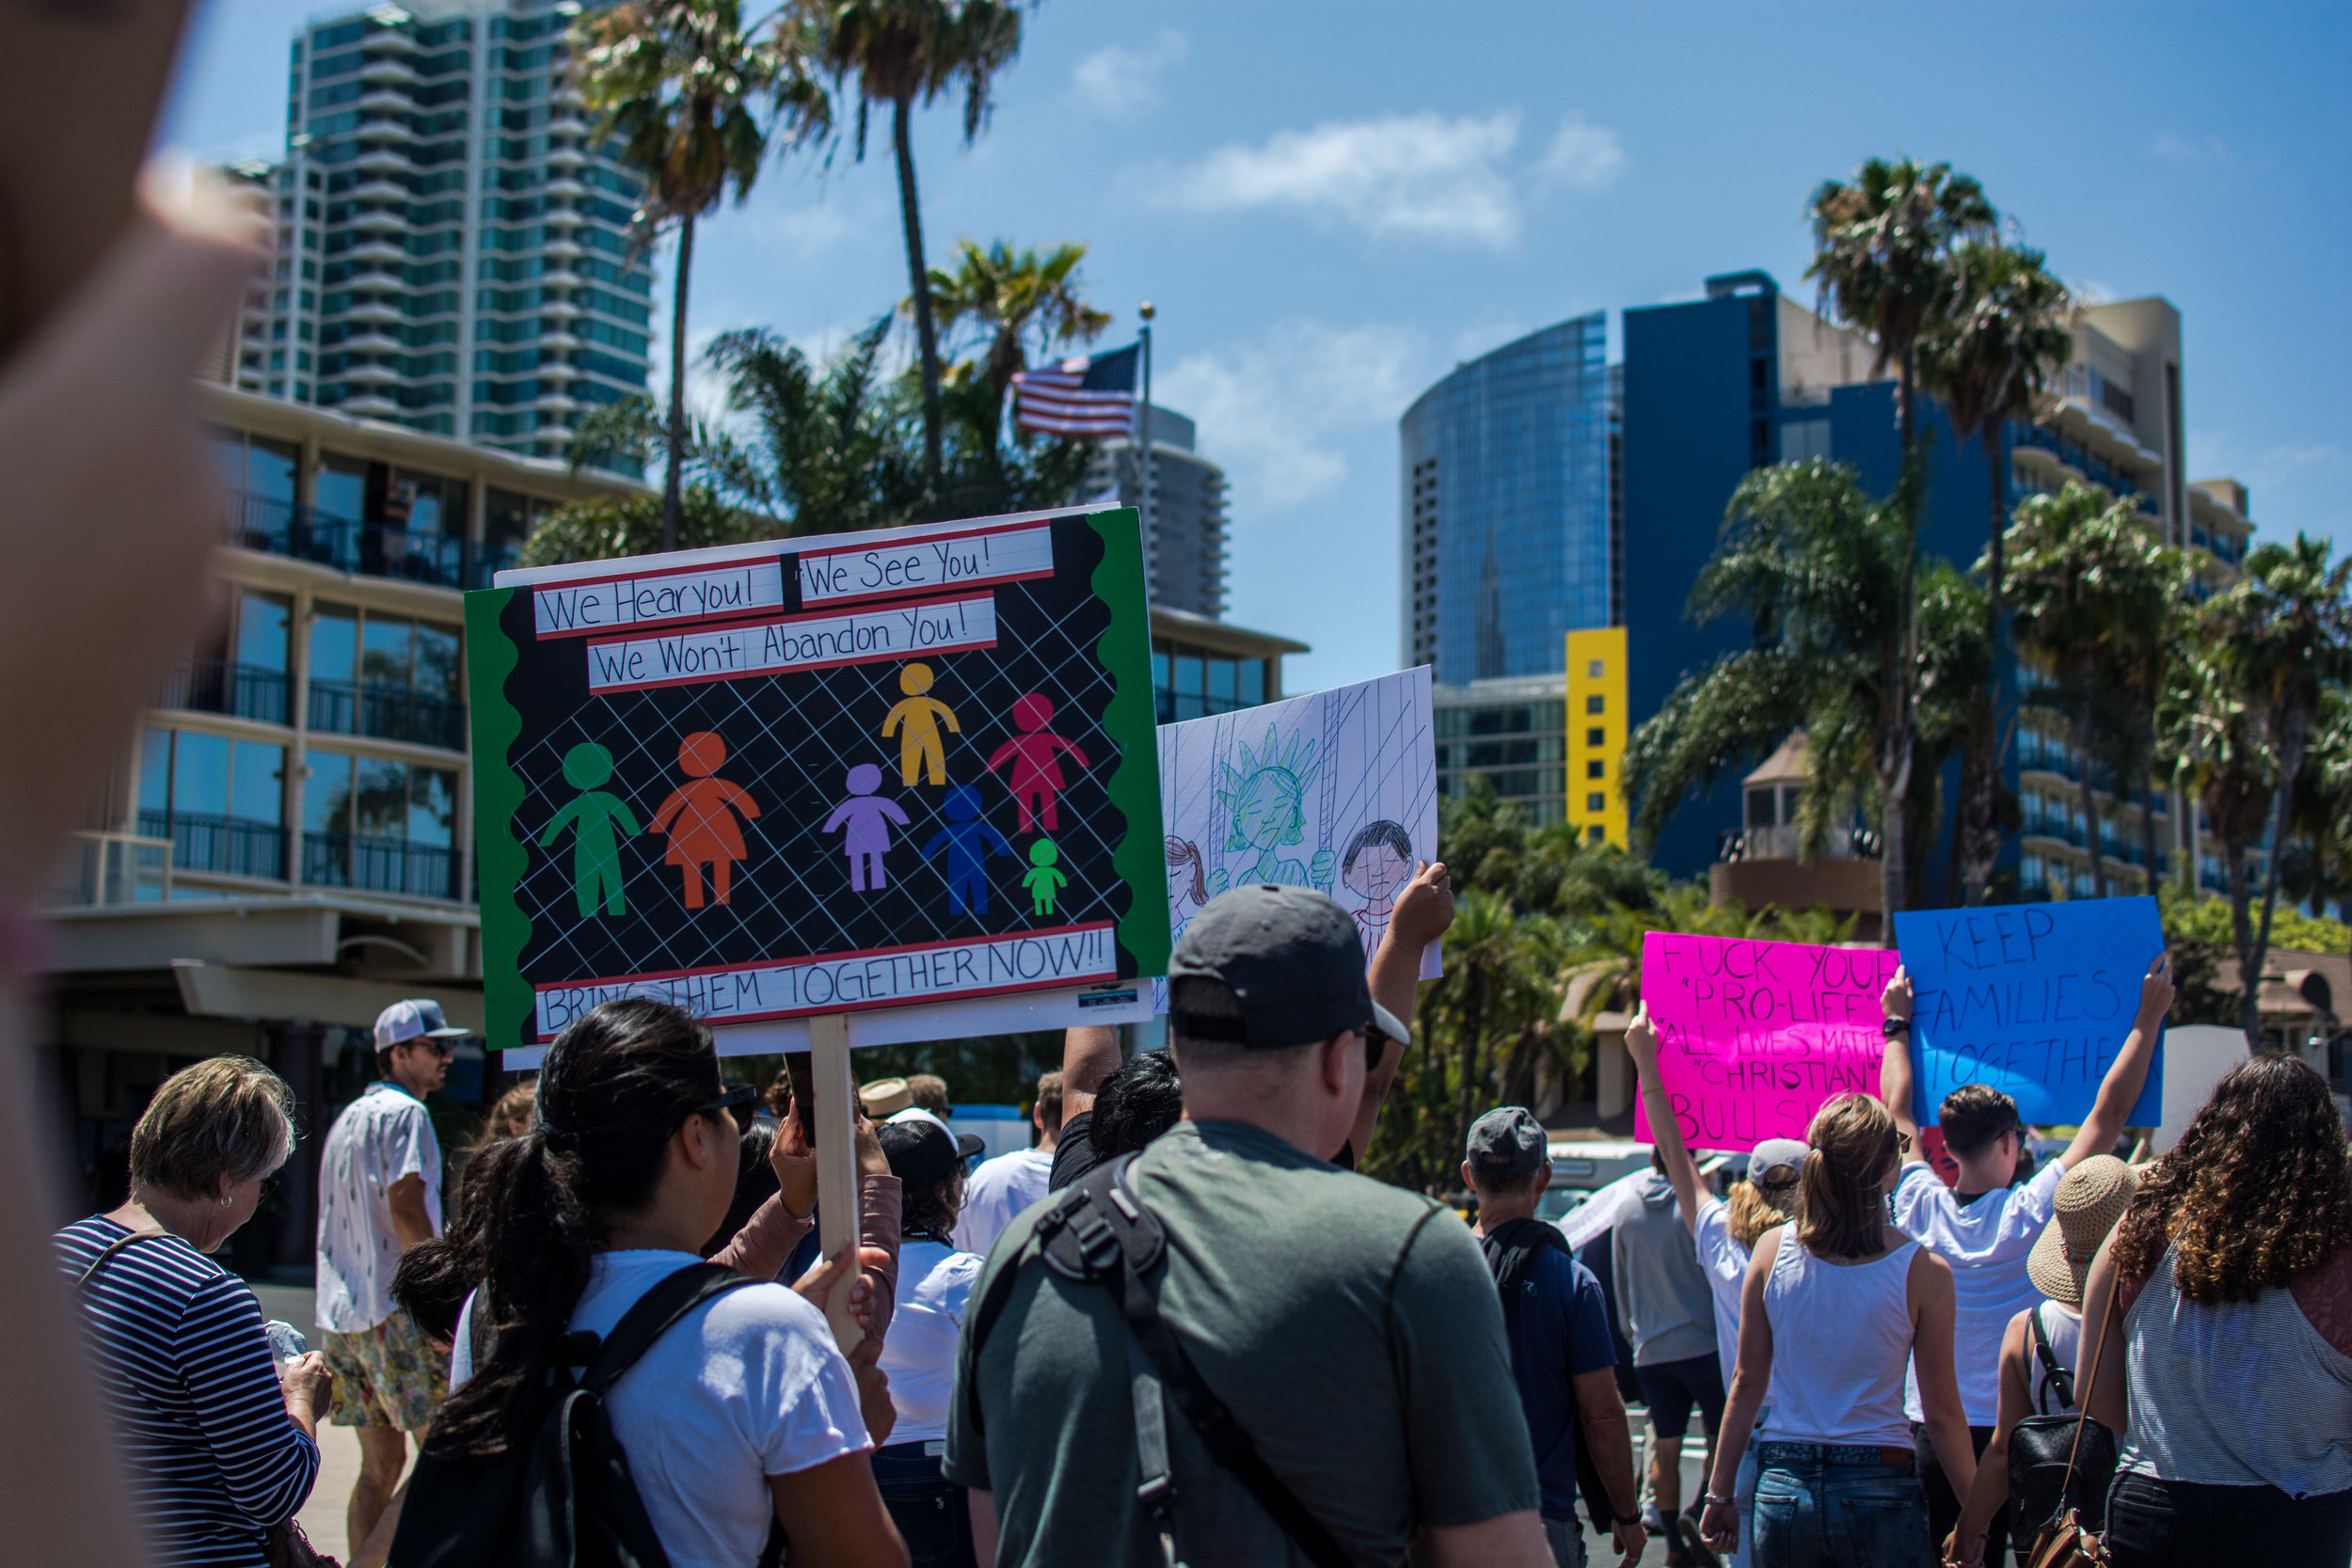 FamiliesBelongTogetherMarch-17.jpg